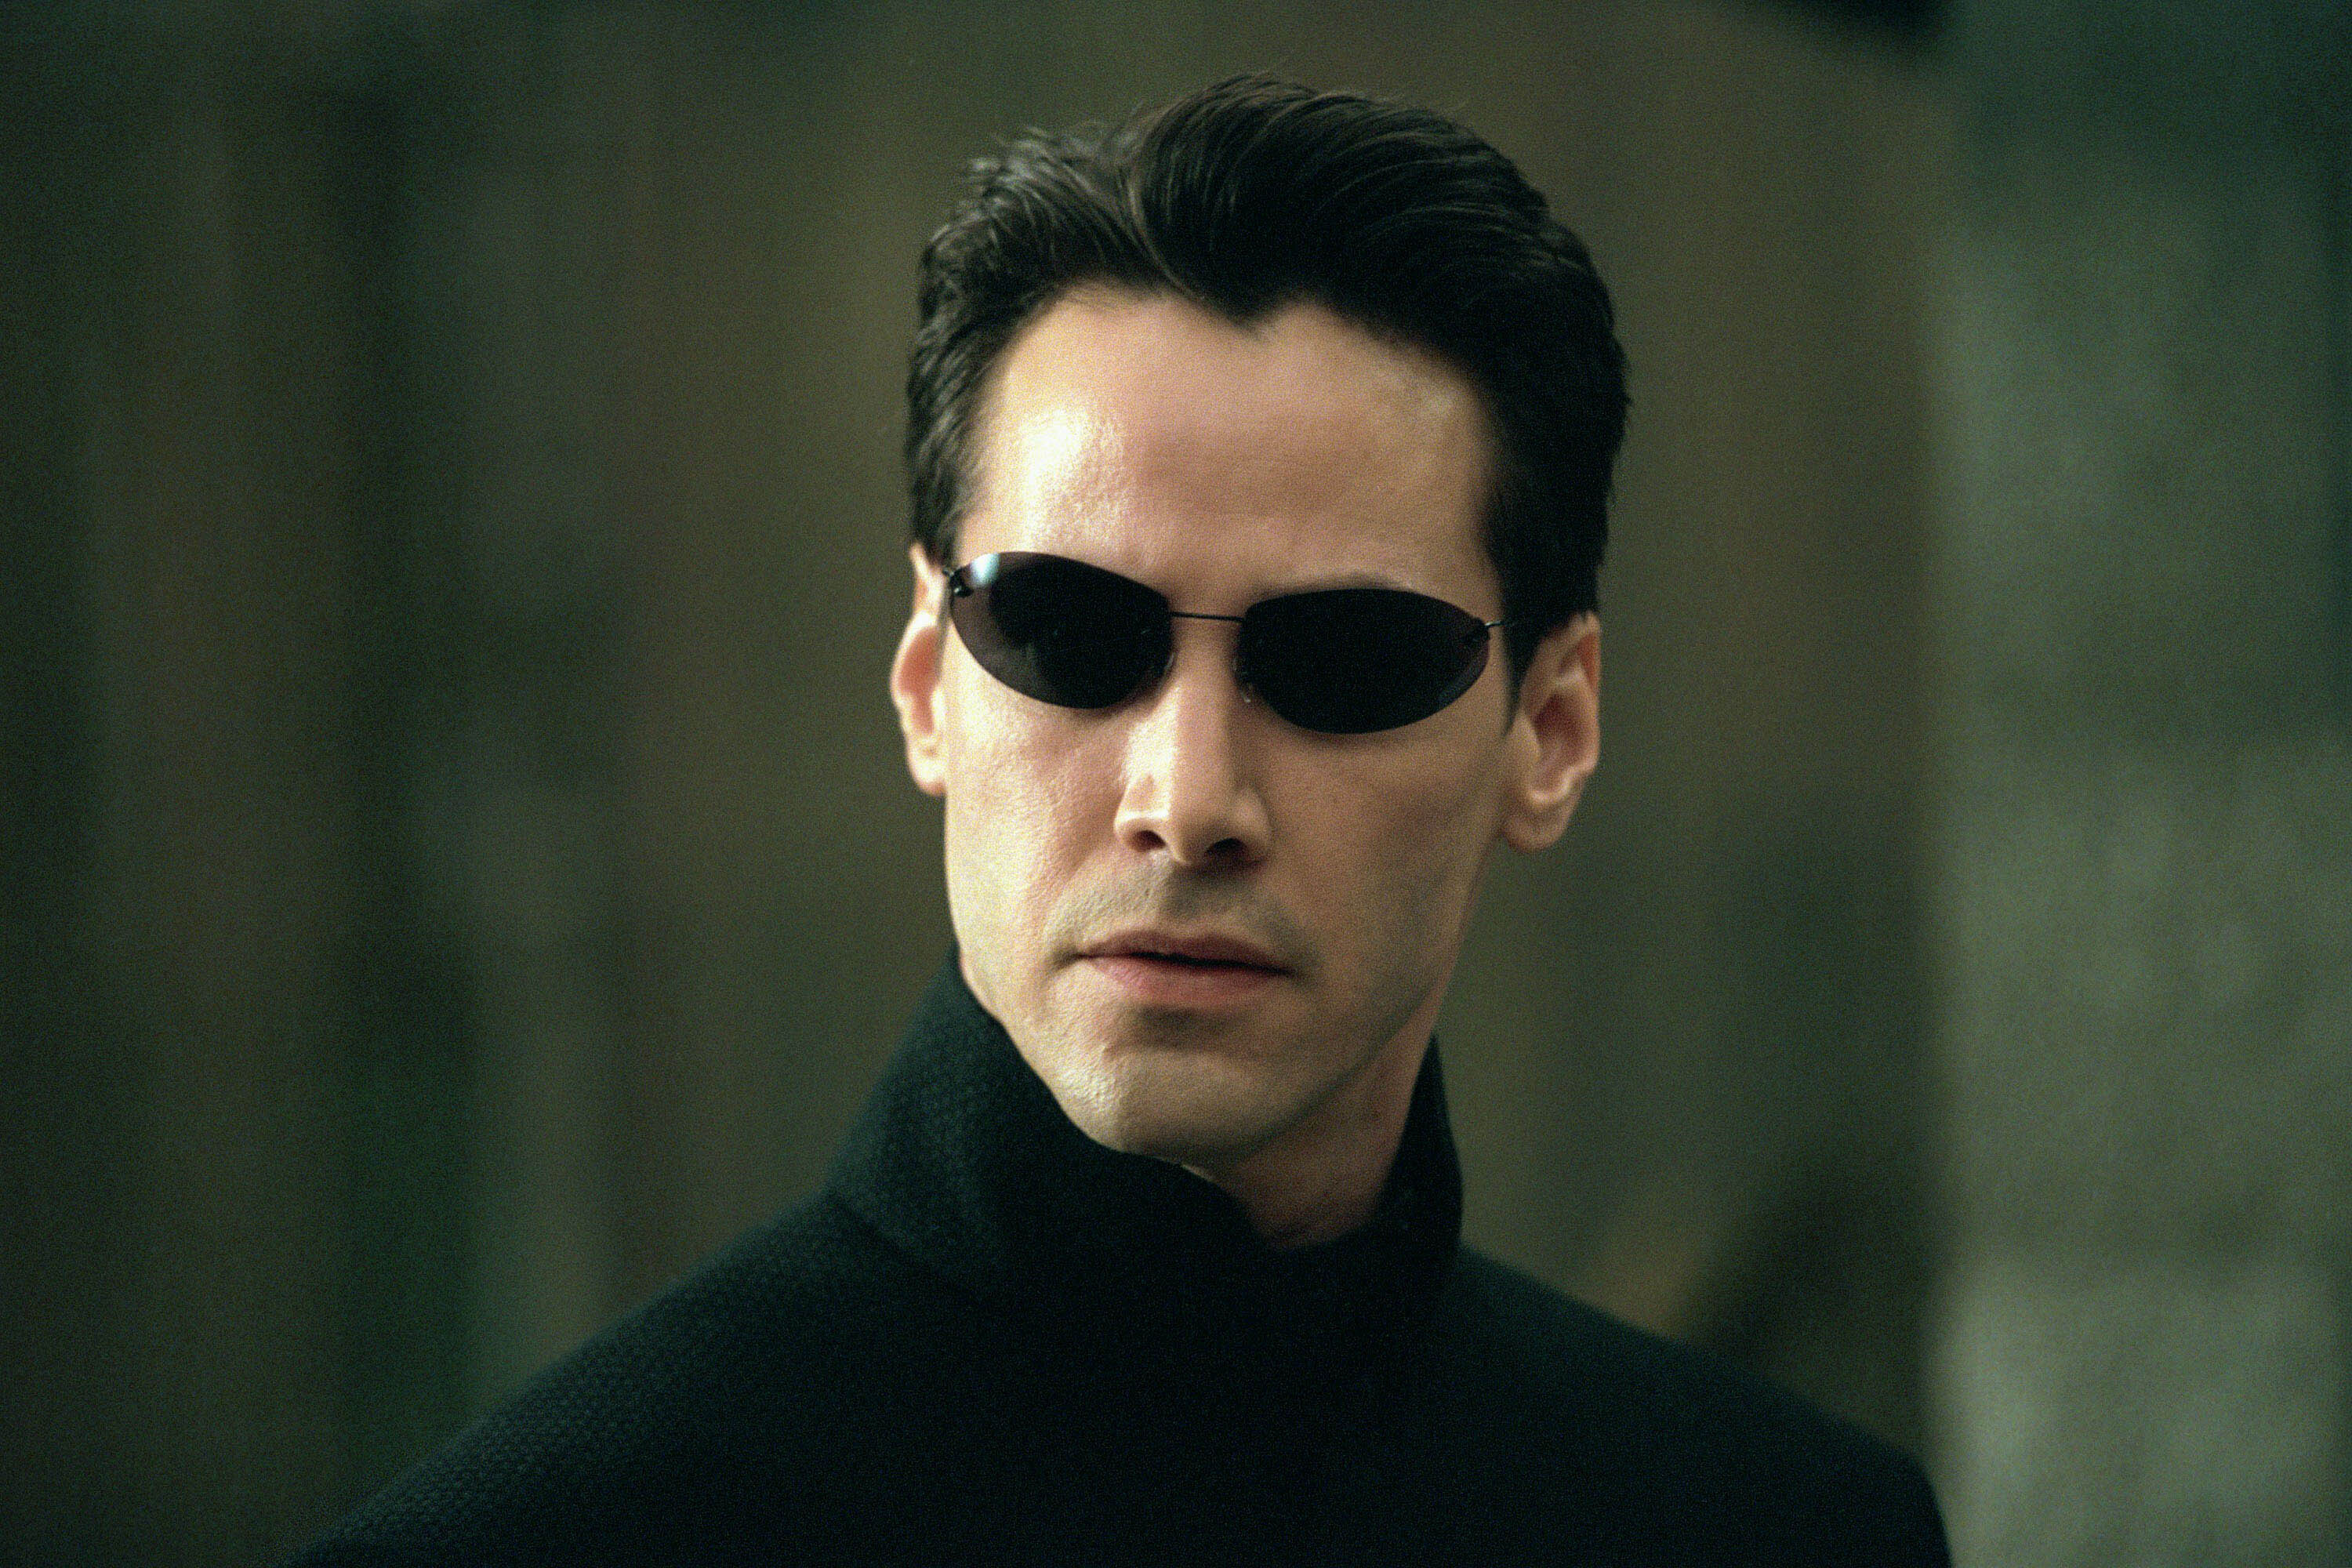 'Matrix 4' trailer and title drops at CinemaCon